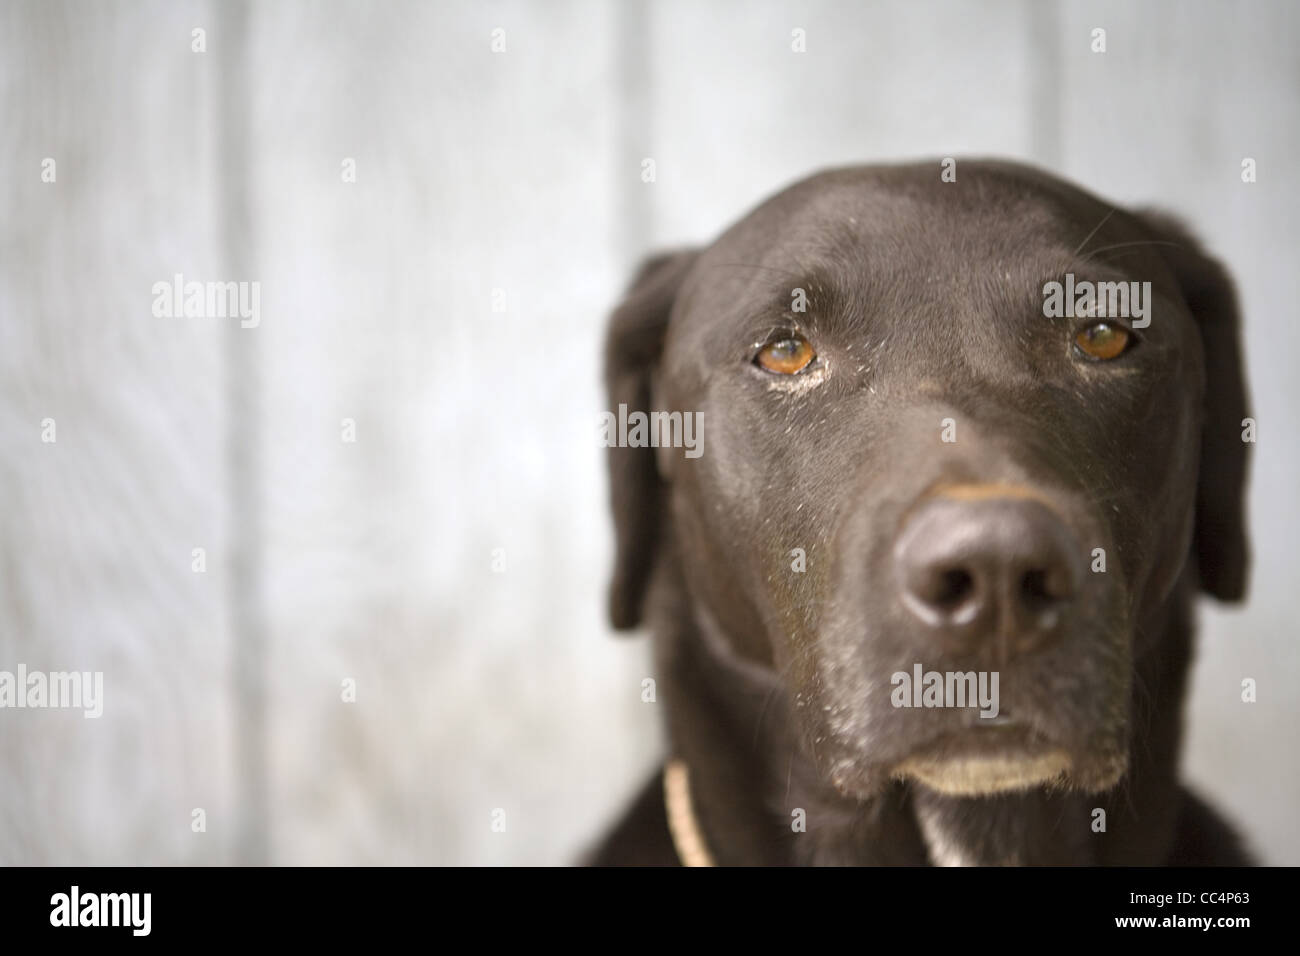 Dog Looking Solemn - Stock Image